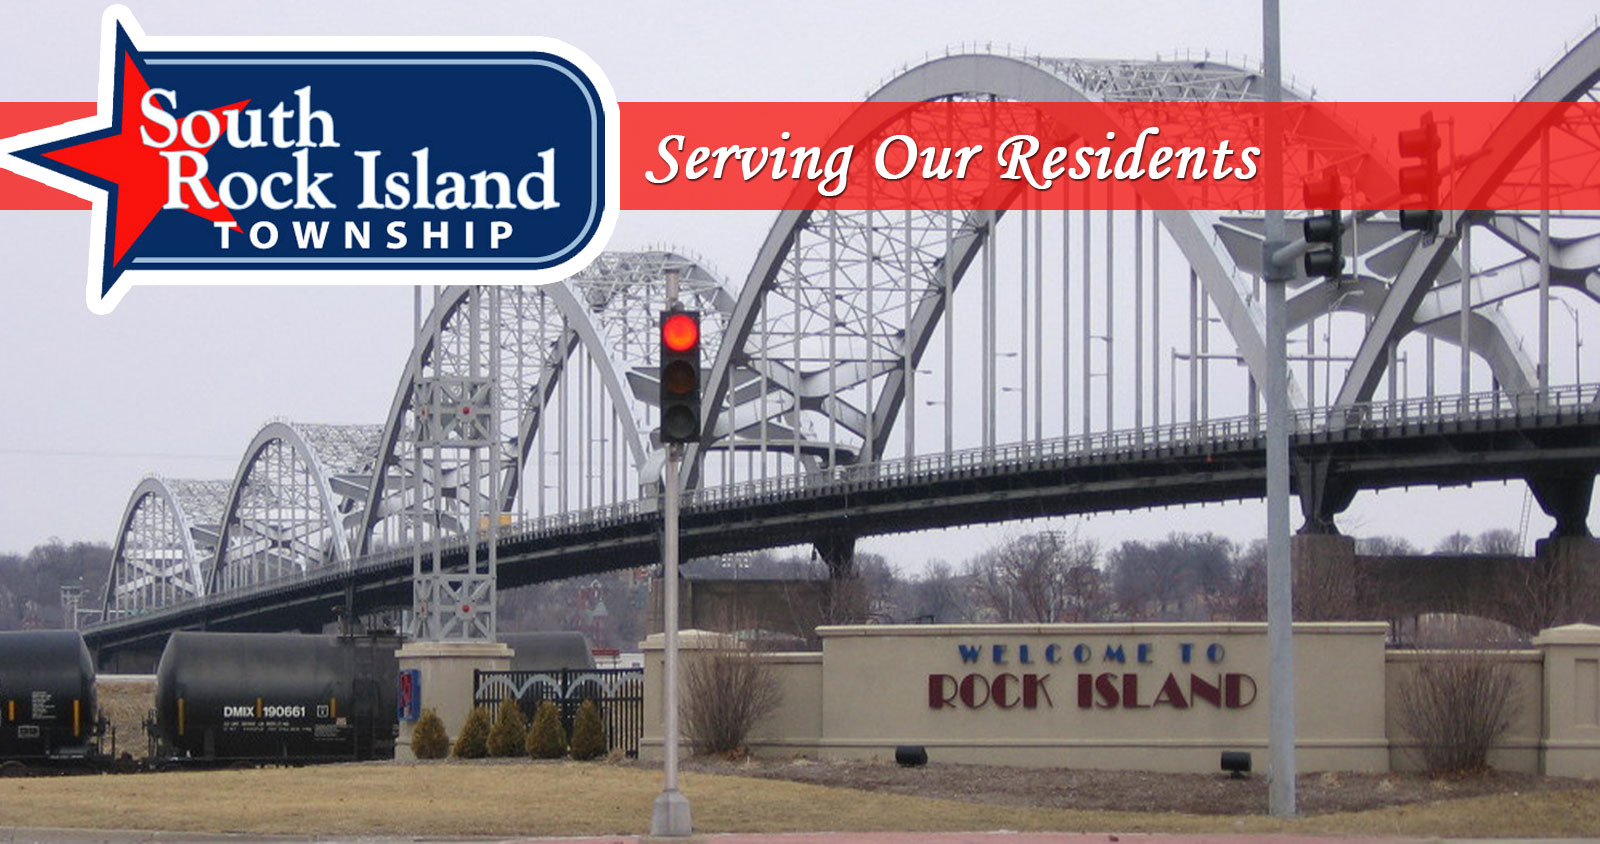 Large picture of Centennial bridge with South Rock Island Towship Logo and the phrase Serving Our Residents at the top